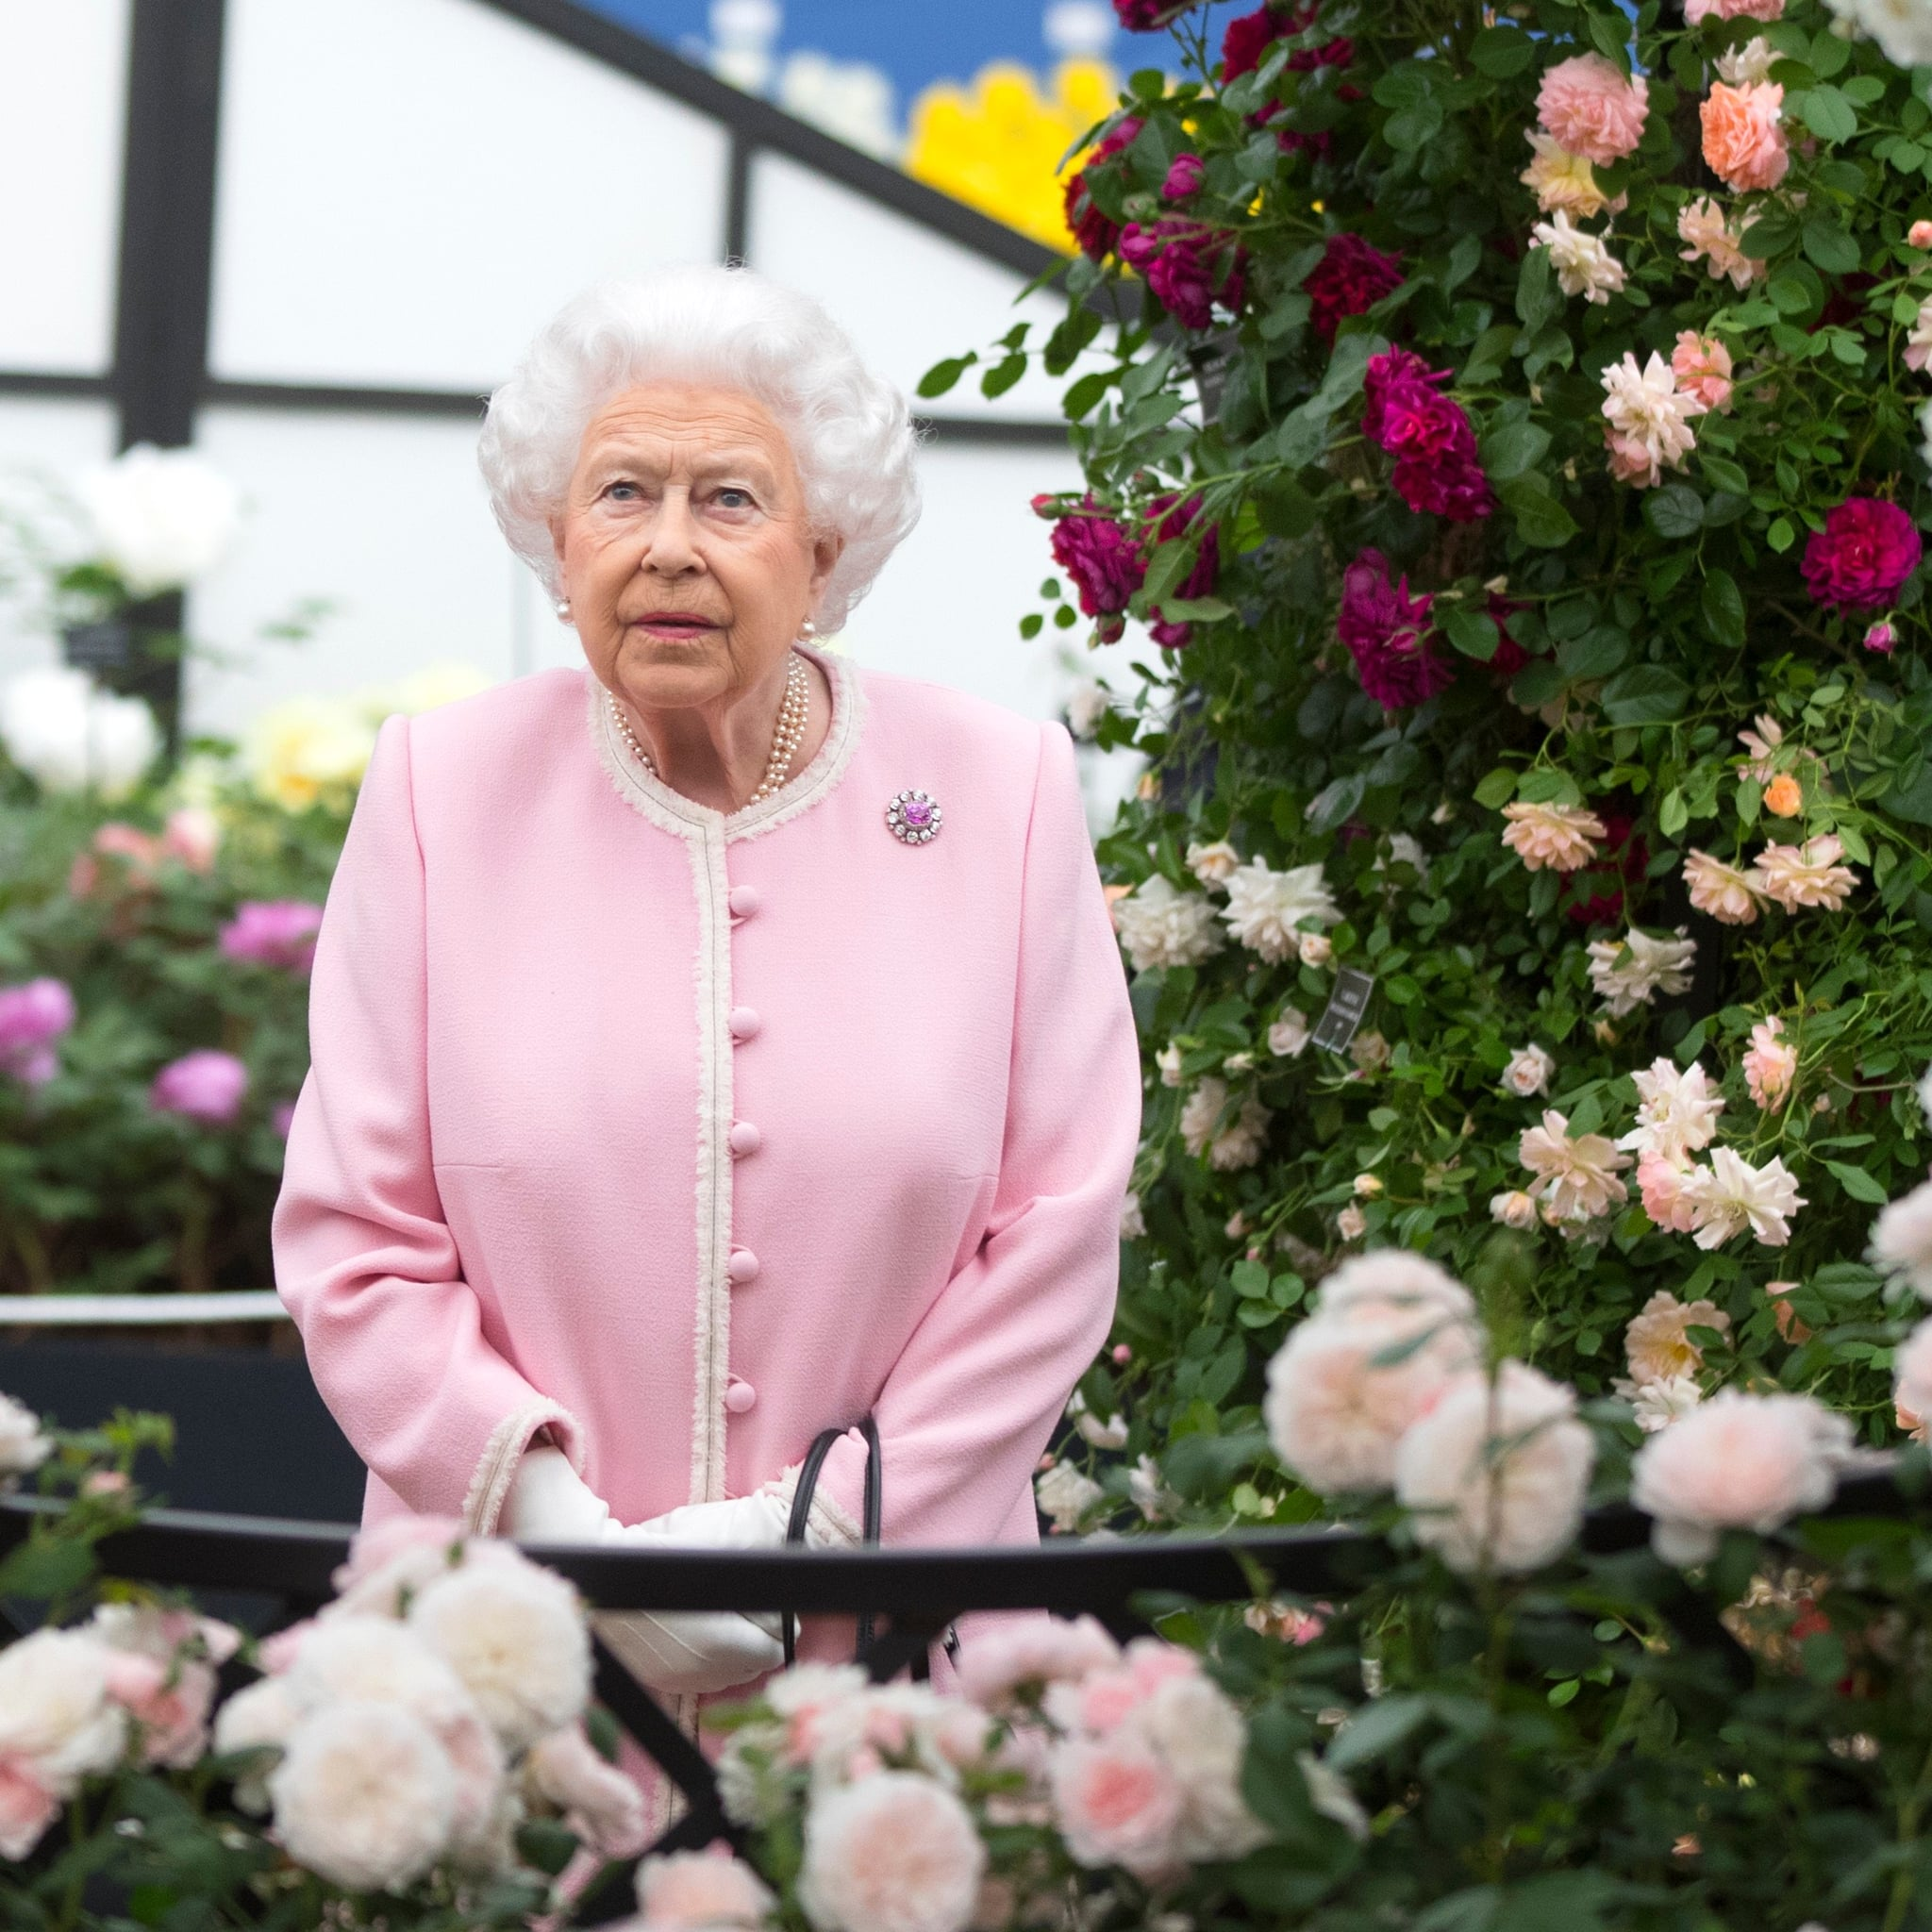 Queen Elizabeth II at the Chelsea Flower Show 2018 | POPSUGAR ...